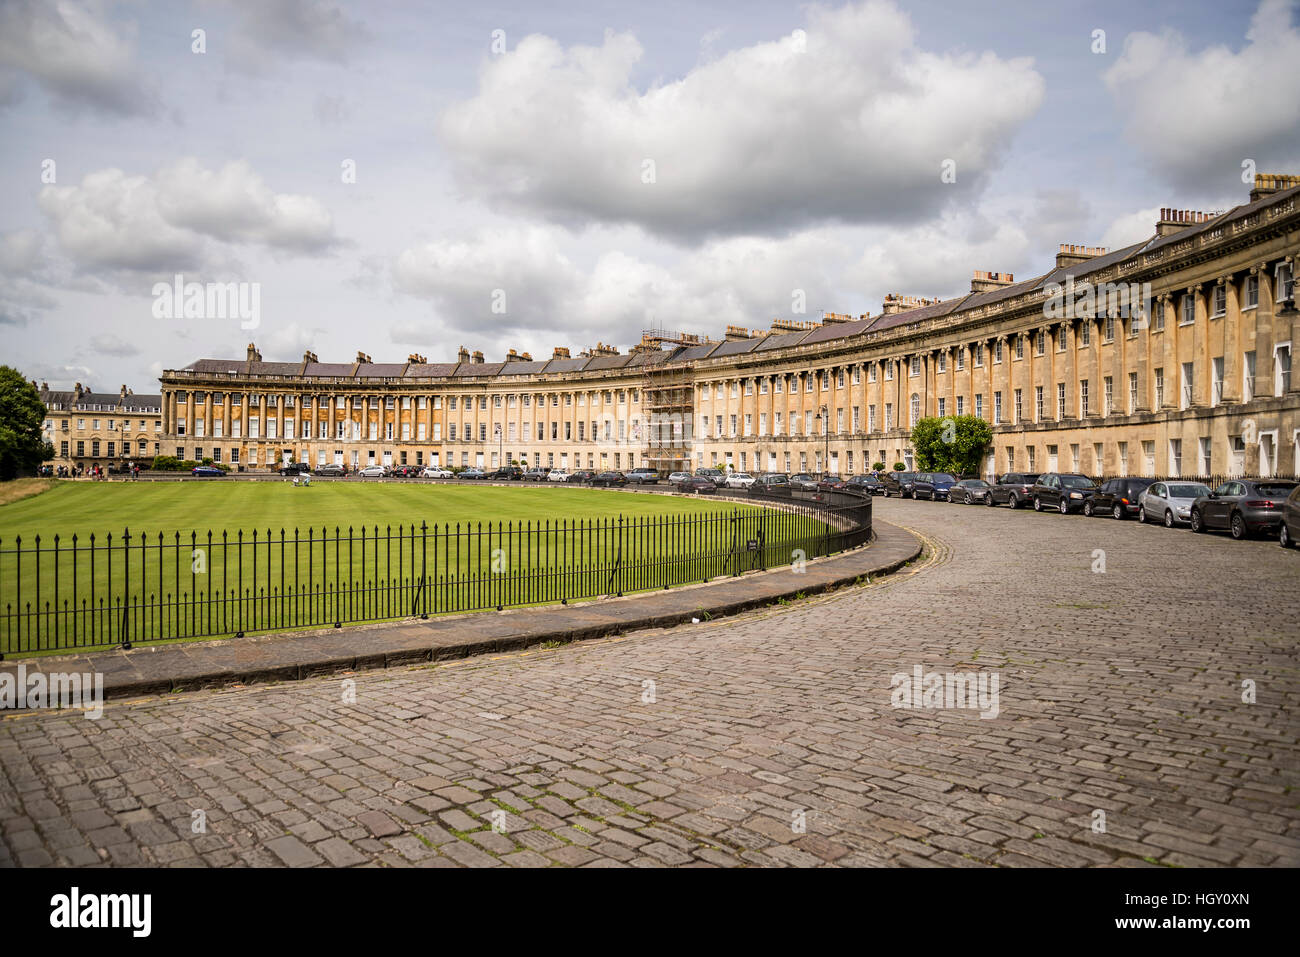 The Circus, famous circular Royal Crescent building in Bath - Stock Image